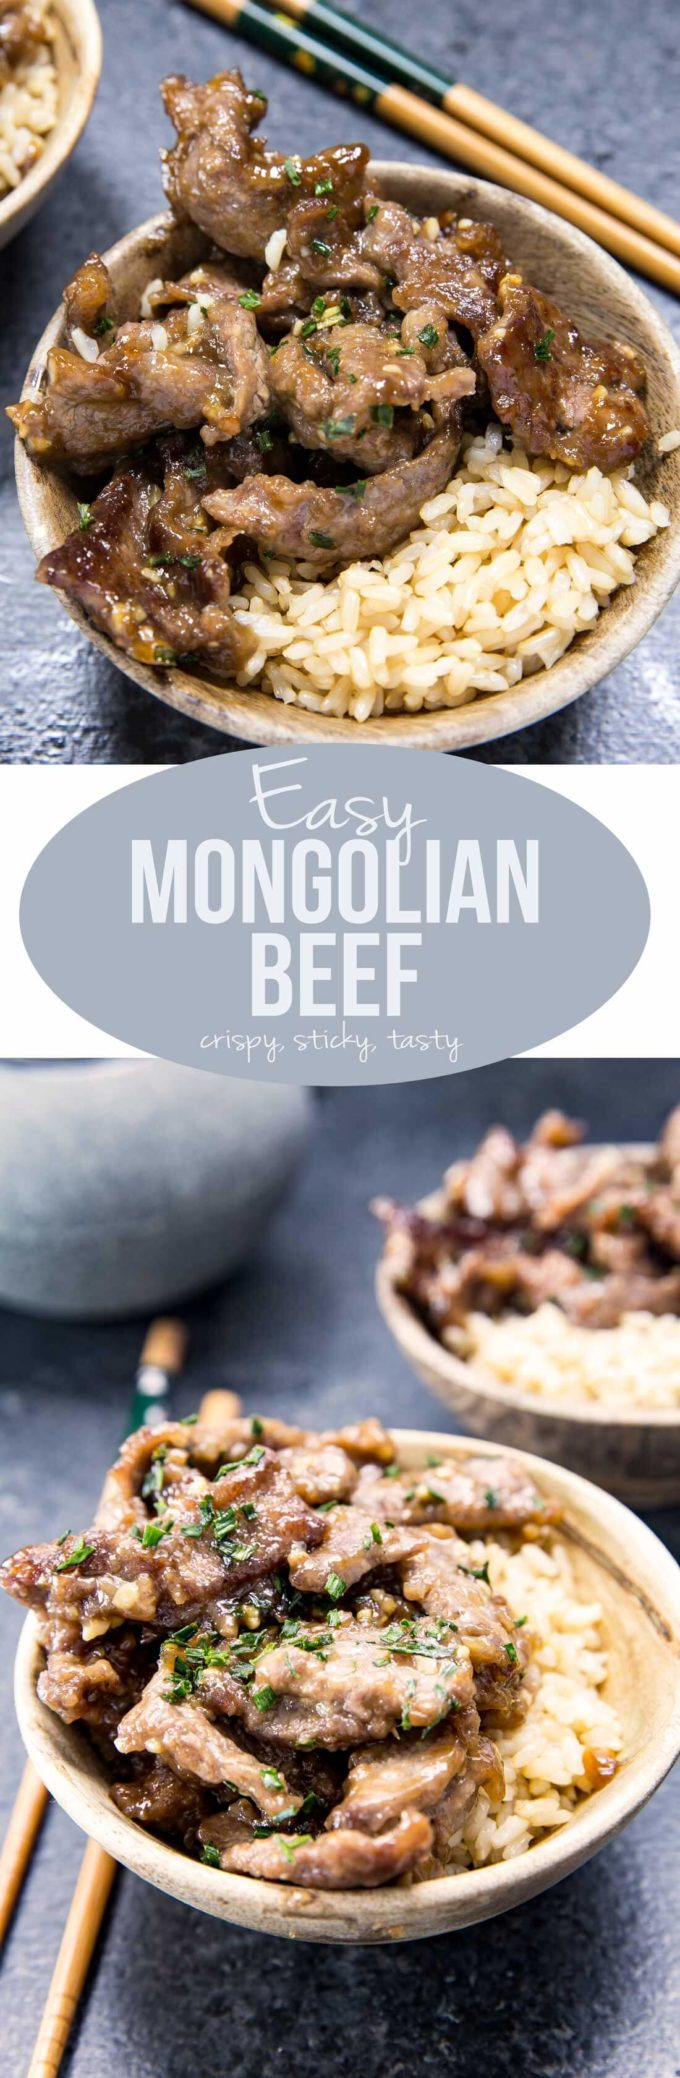 Easy Mongolian Beef is crispy, sticky, easy to make, and features an addictive sauce that is warmly perfumed with asian flavors. It can also be batch prepped ahead of time, to fit nicely into a rotation of favorite meals.